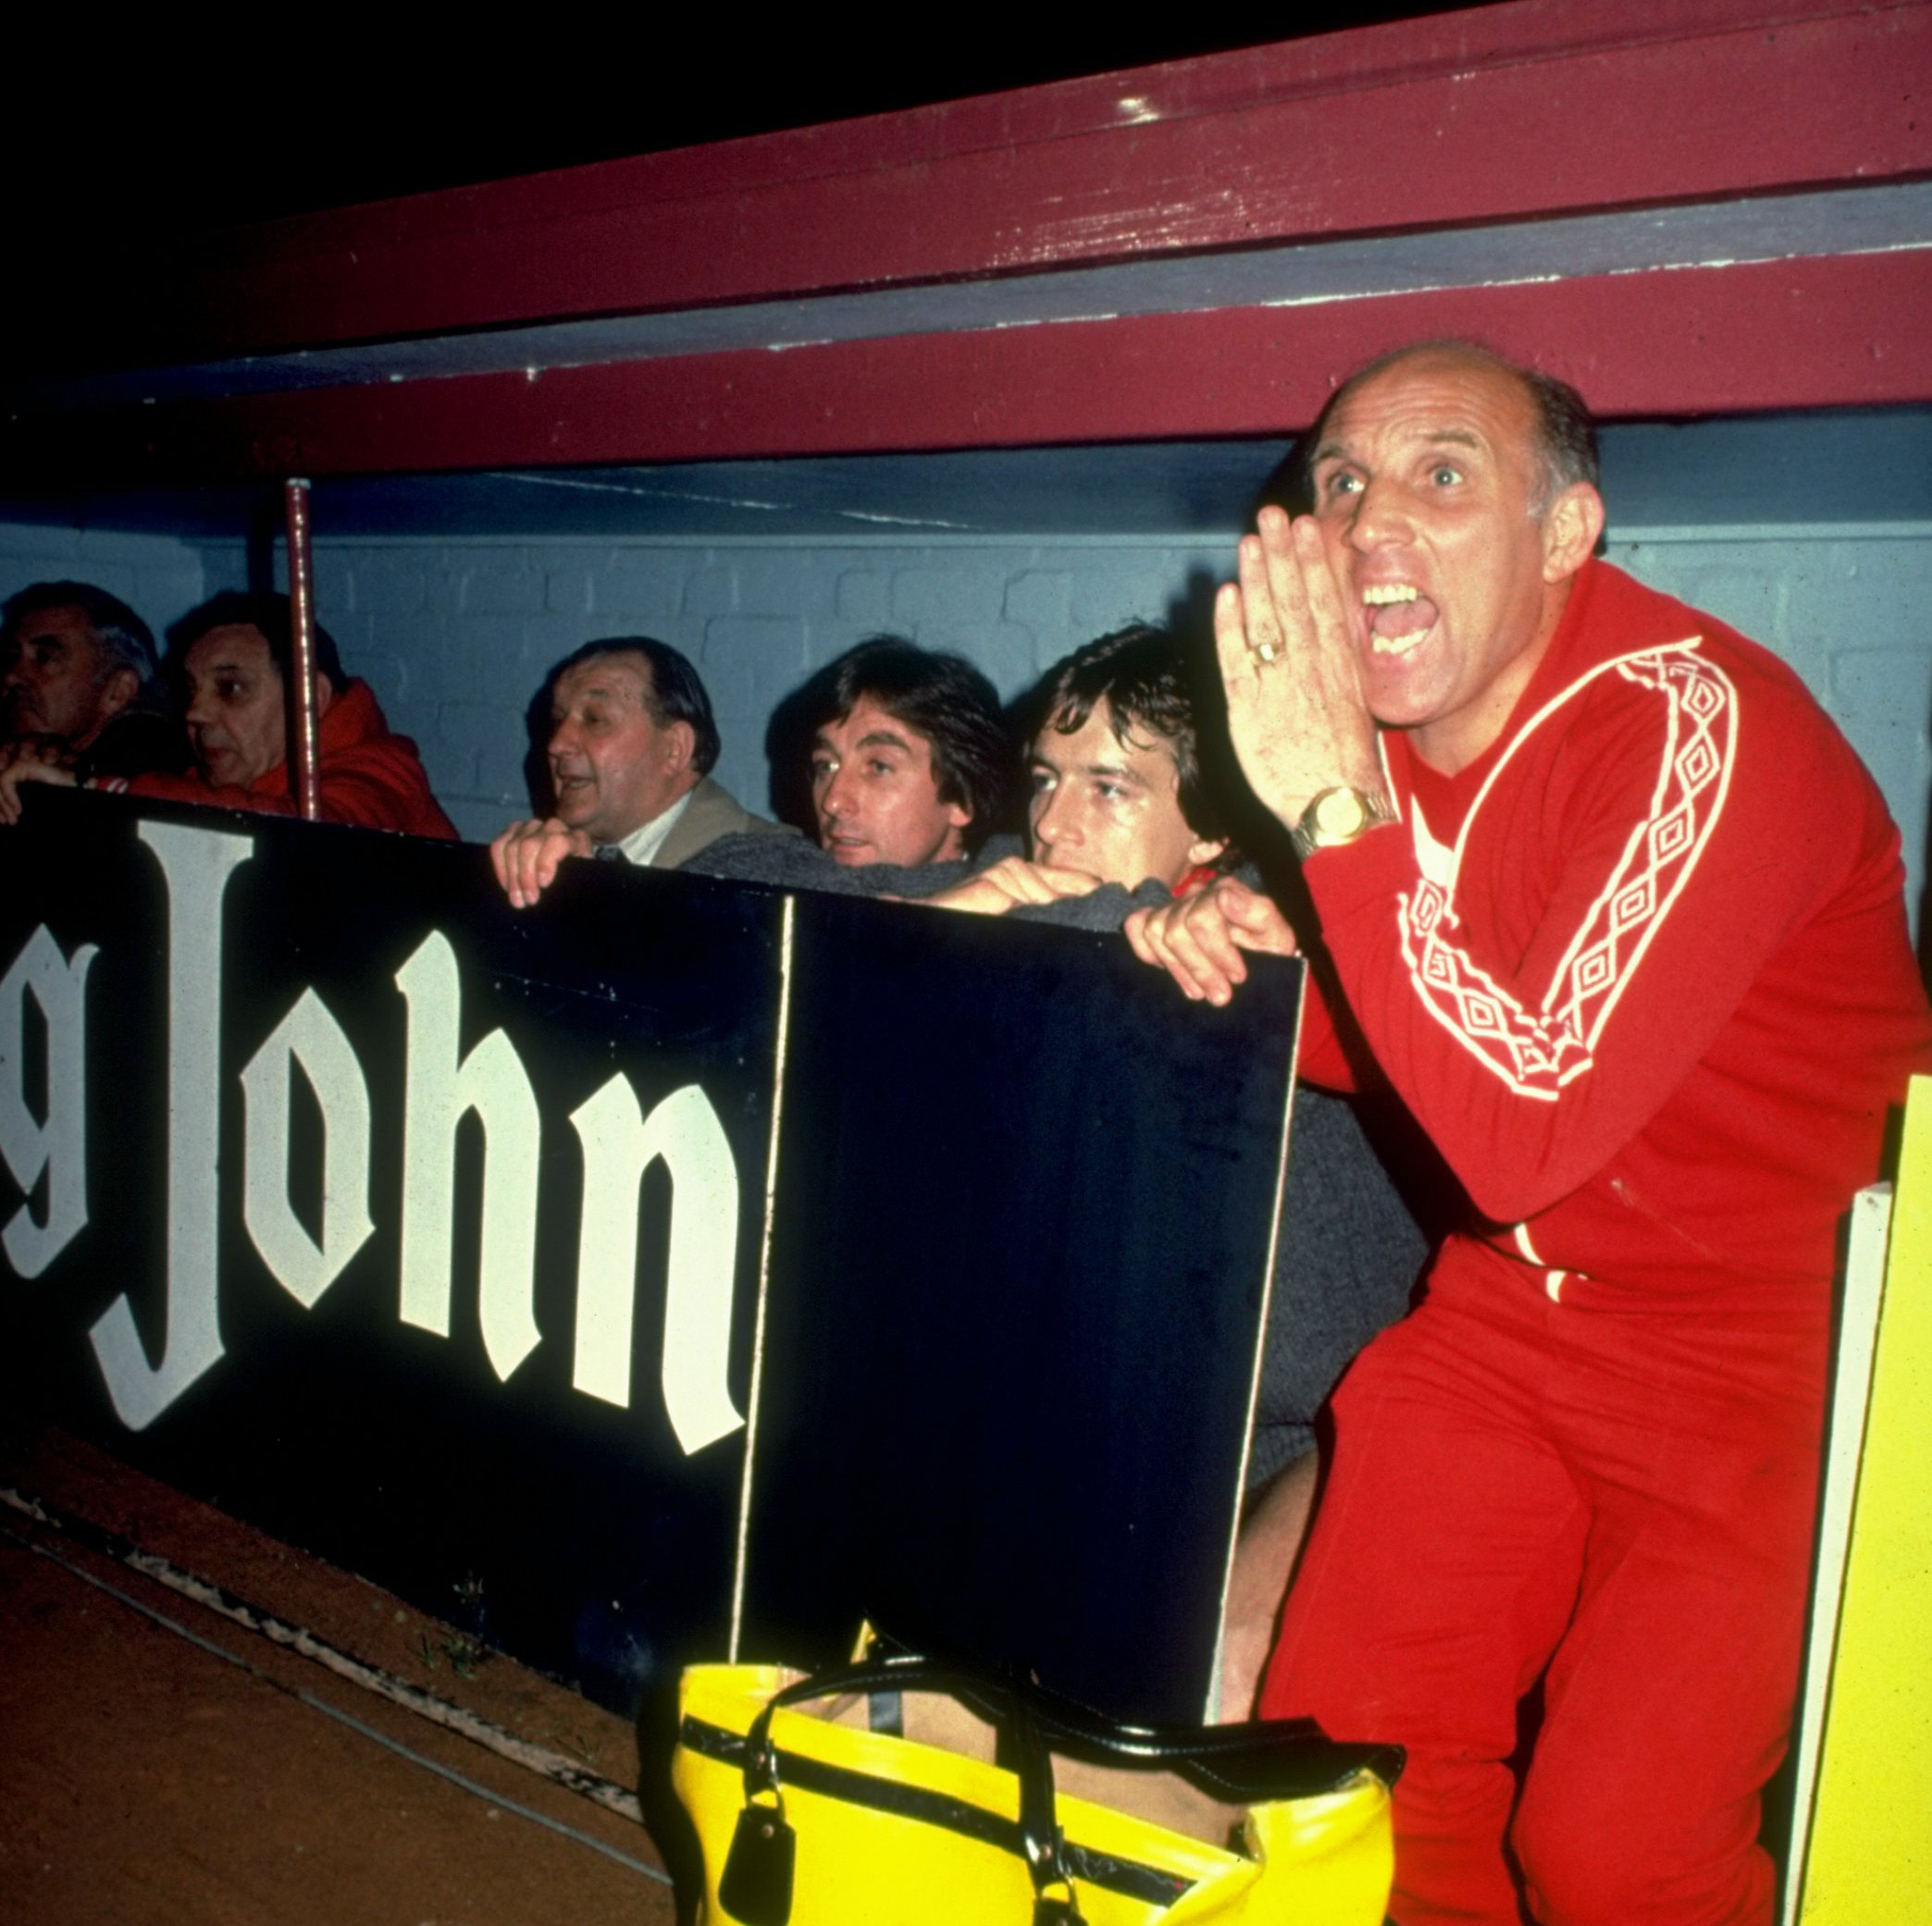 LAST THOUGHTS ON RONNIE MORAN